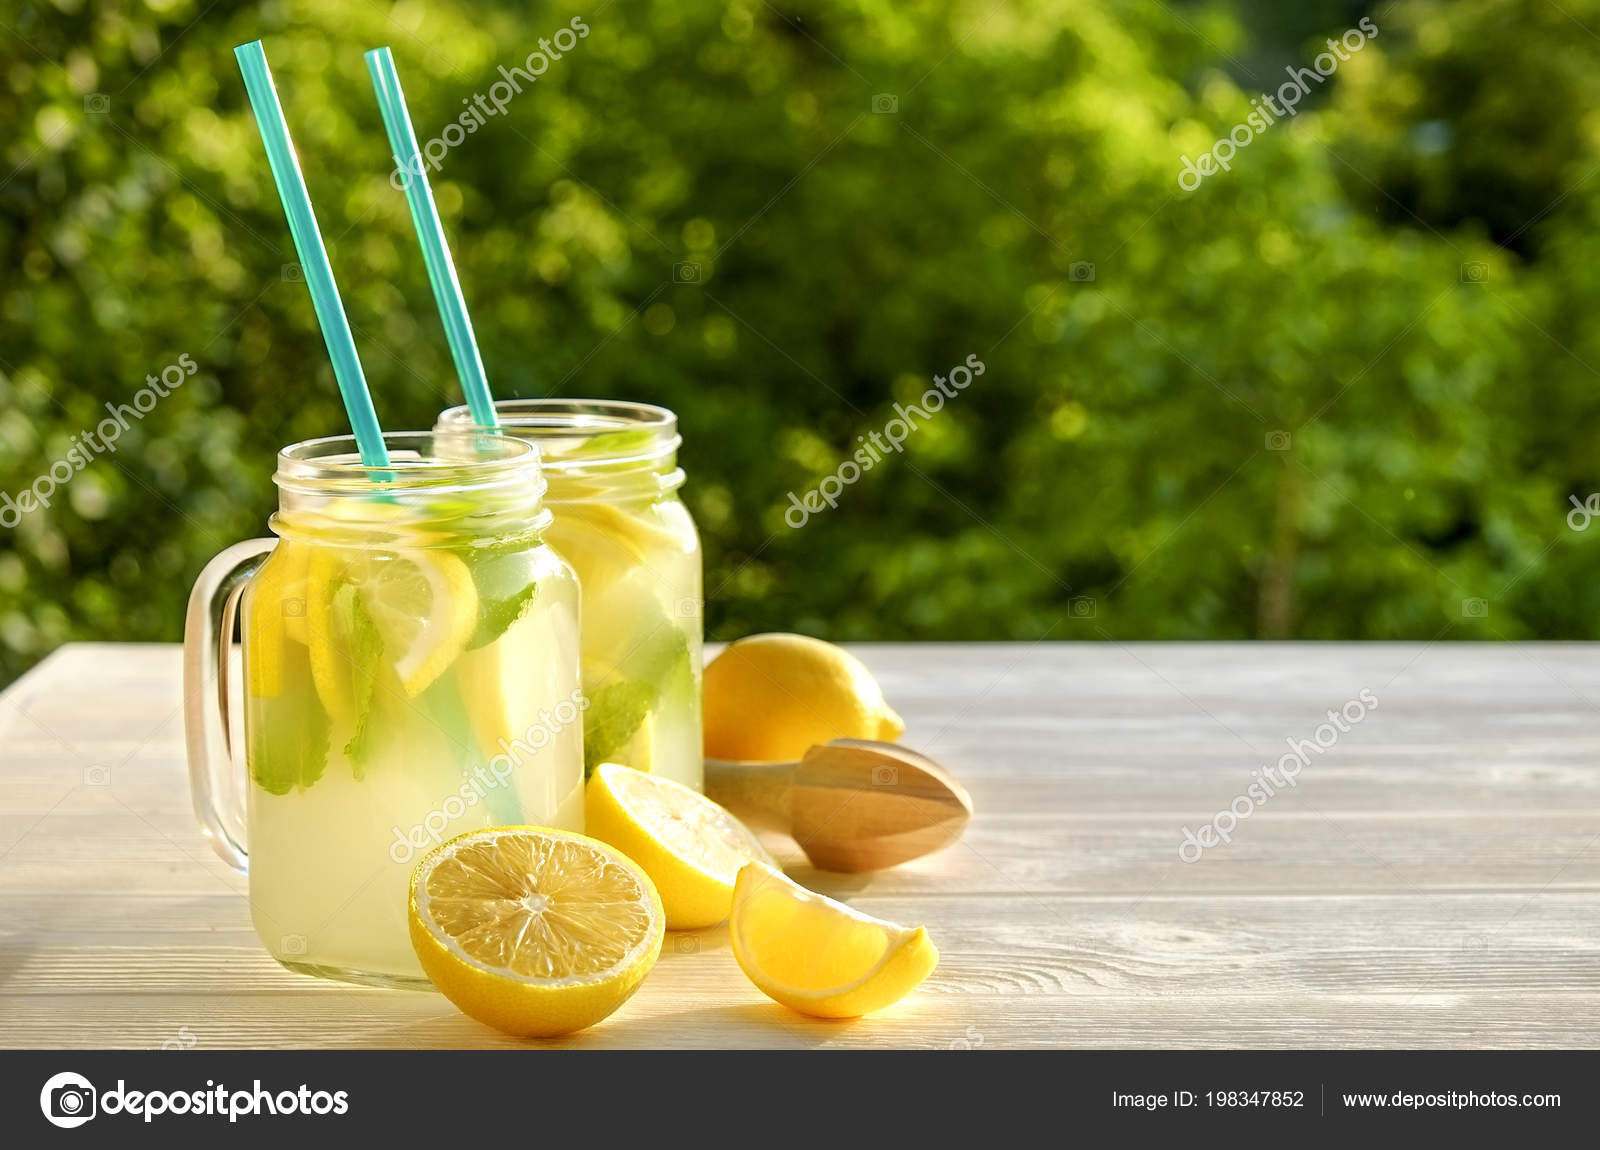 Two Mason Jar Glasses Homemade Lemonade Slices Organic Ripe Lemon Stock Photo Evrmmnt 198347852